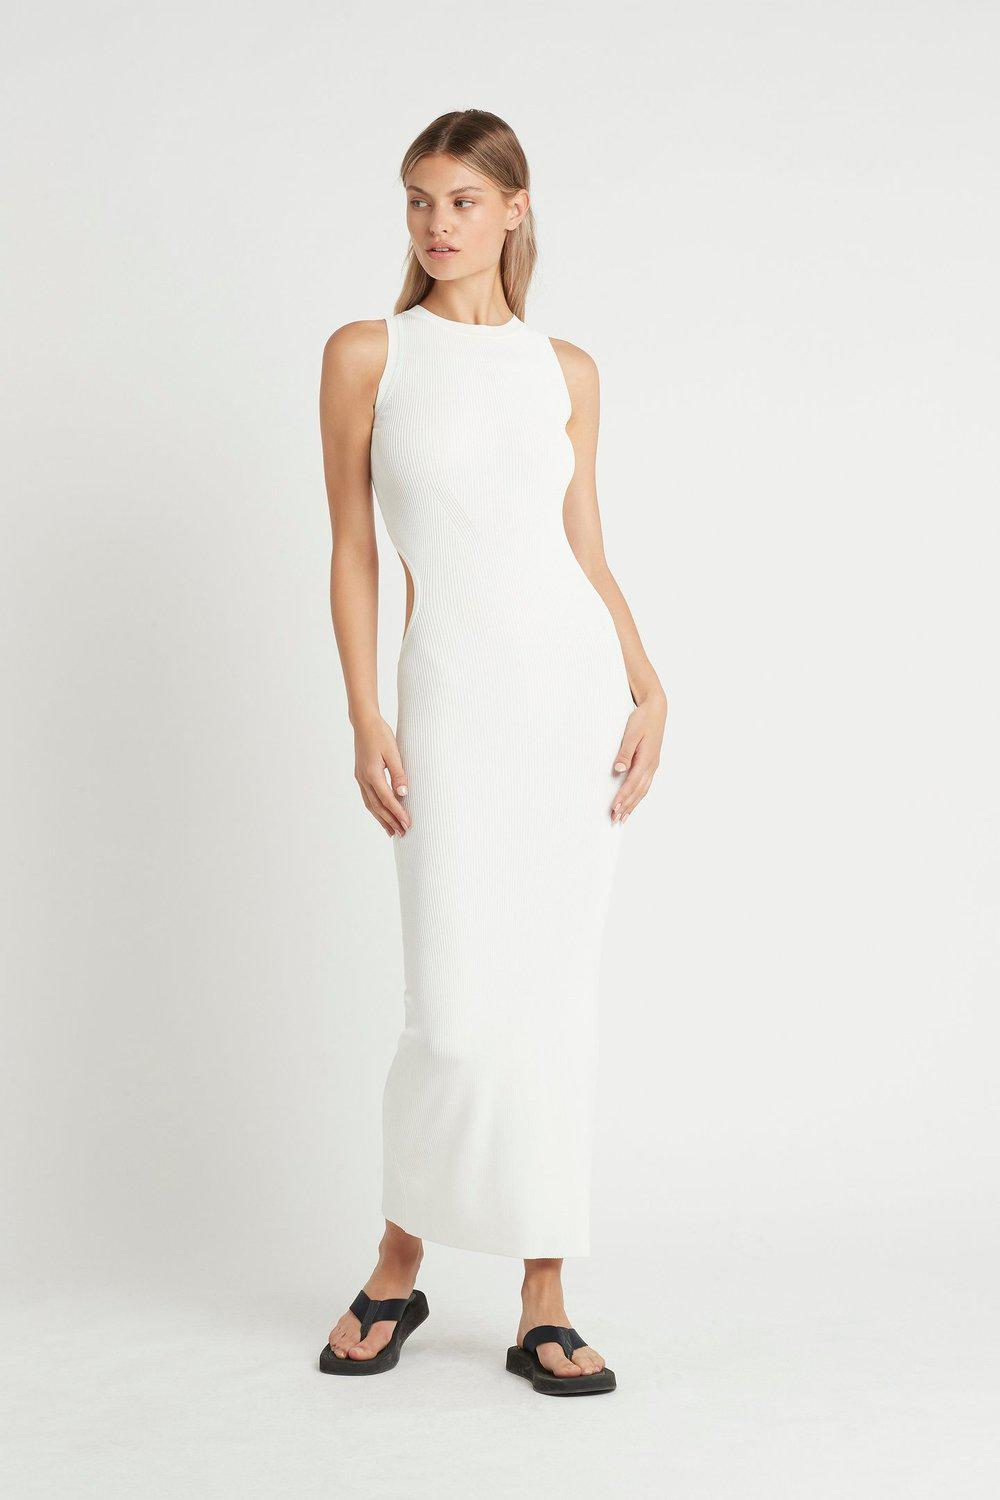 Celle Cut Out Dress / Ivory | SIR | Mad About The Boy